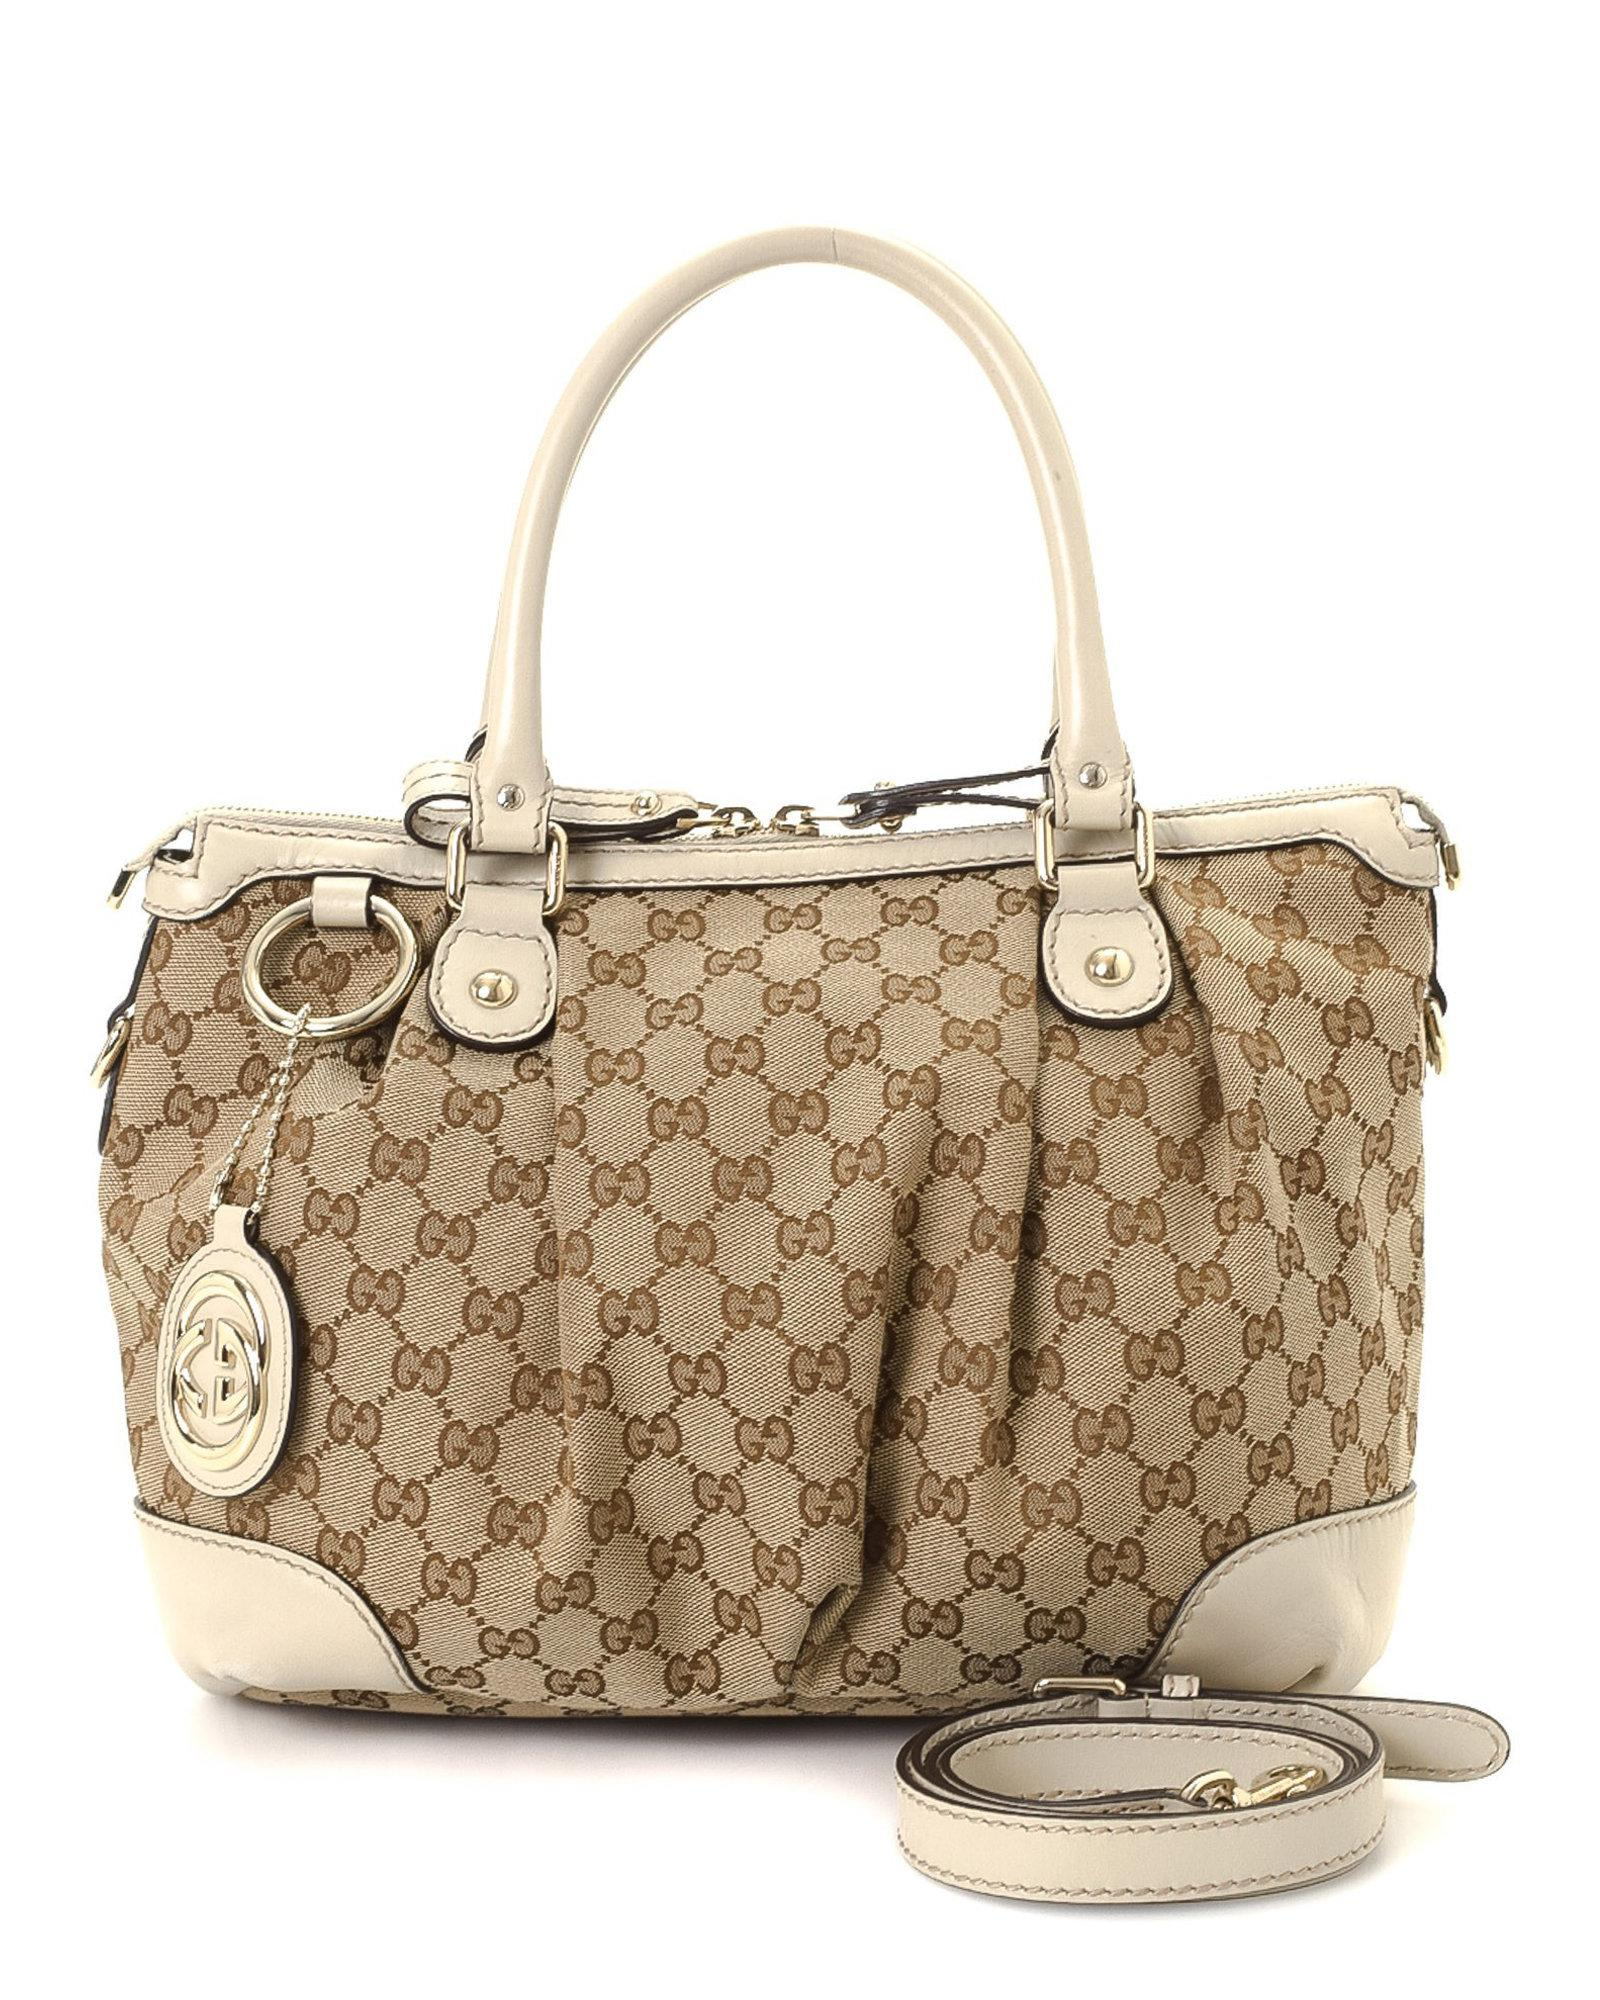 6f07efa8ceae Gucci Gg Canvas Sukey Two-way Handbag - Vintage in Natural - Lyst